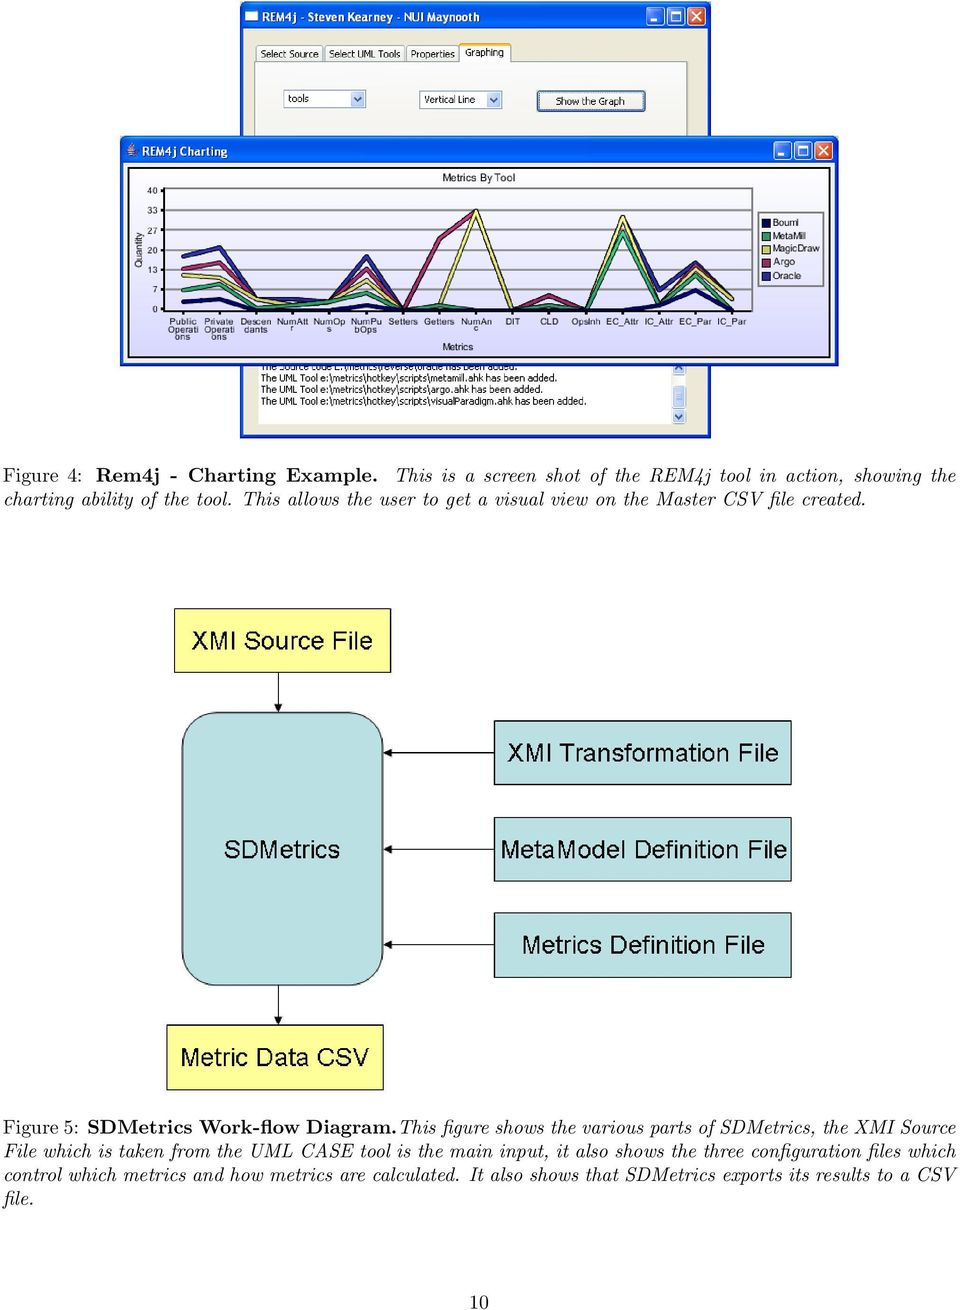 This figure shows the various parts of SDMetrics, the XMI Source File which is taken from the UML CASE tool is the main input, it also